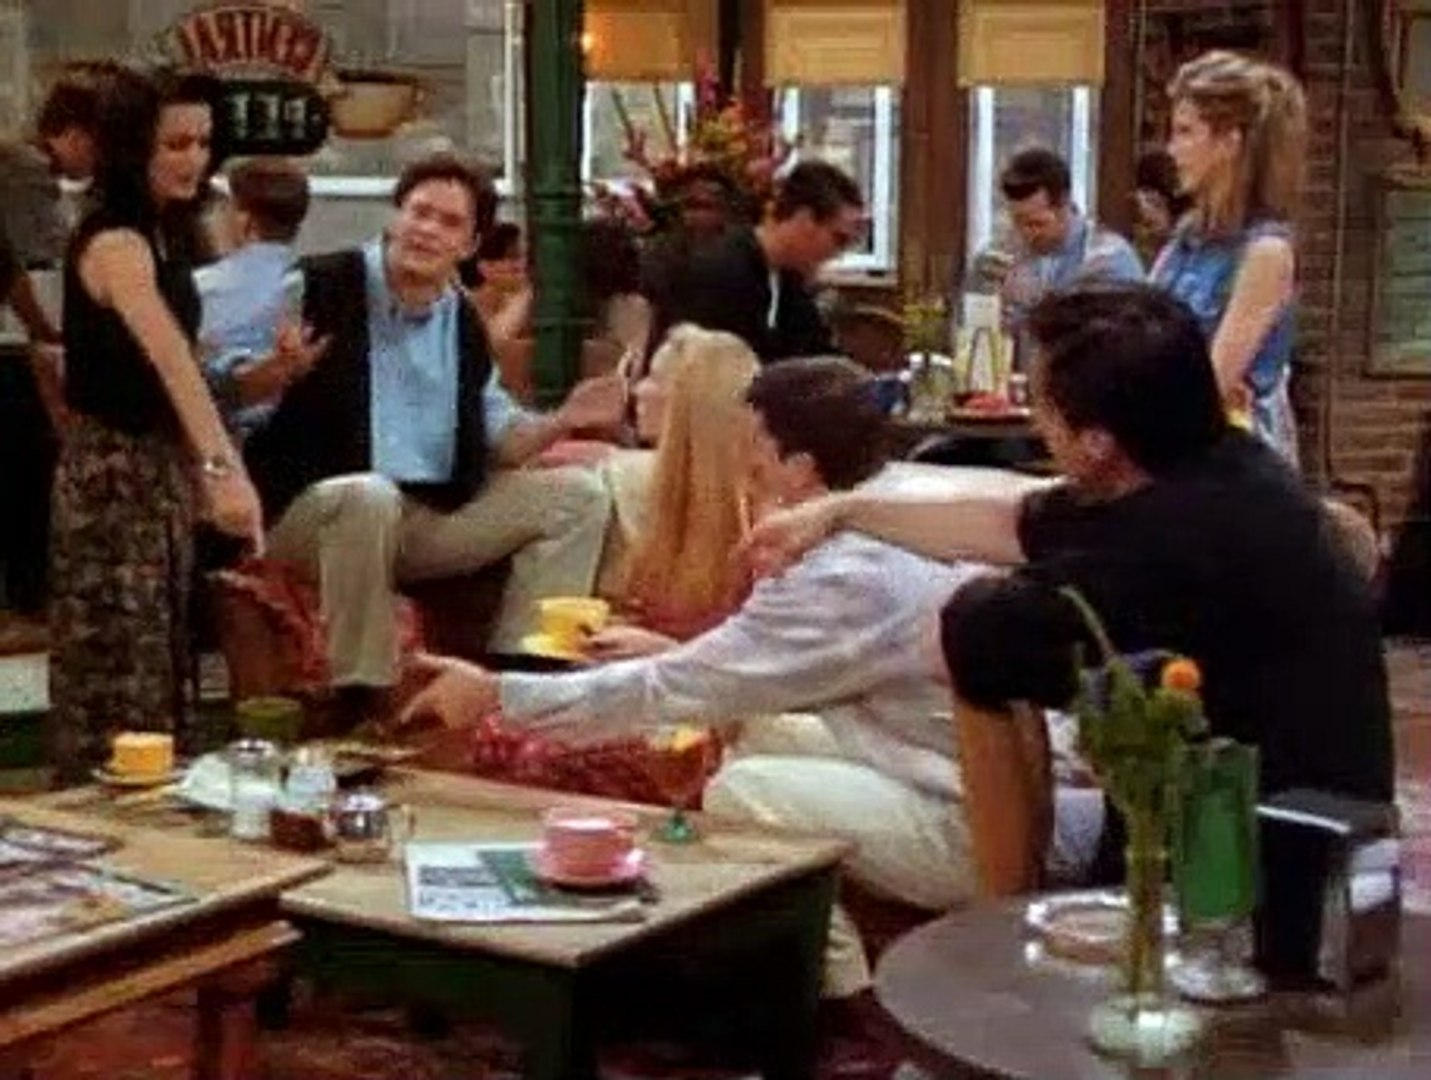 Friends S01E03 The One with the Thumb